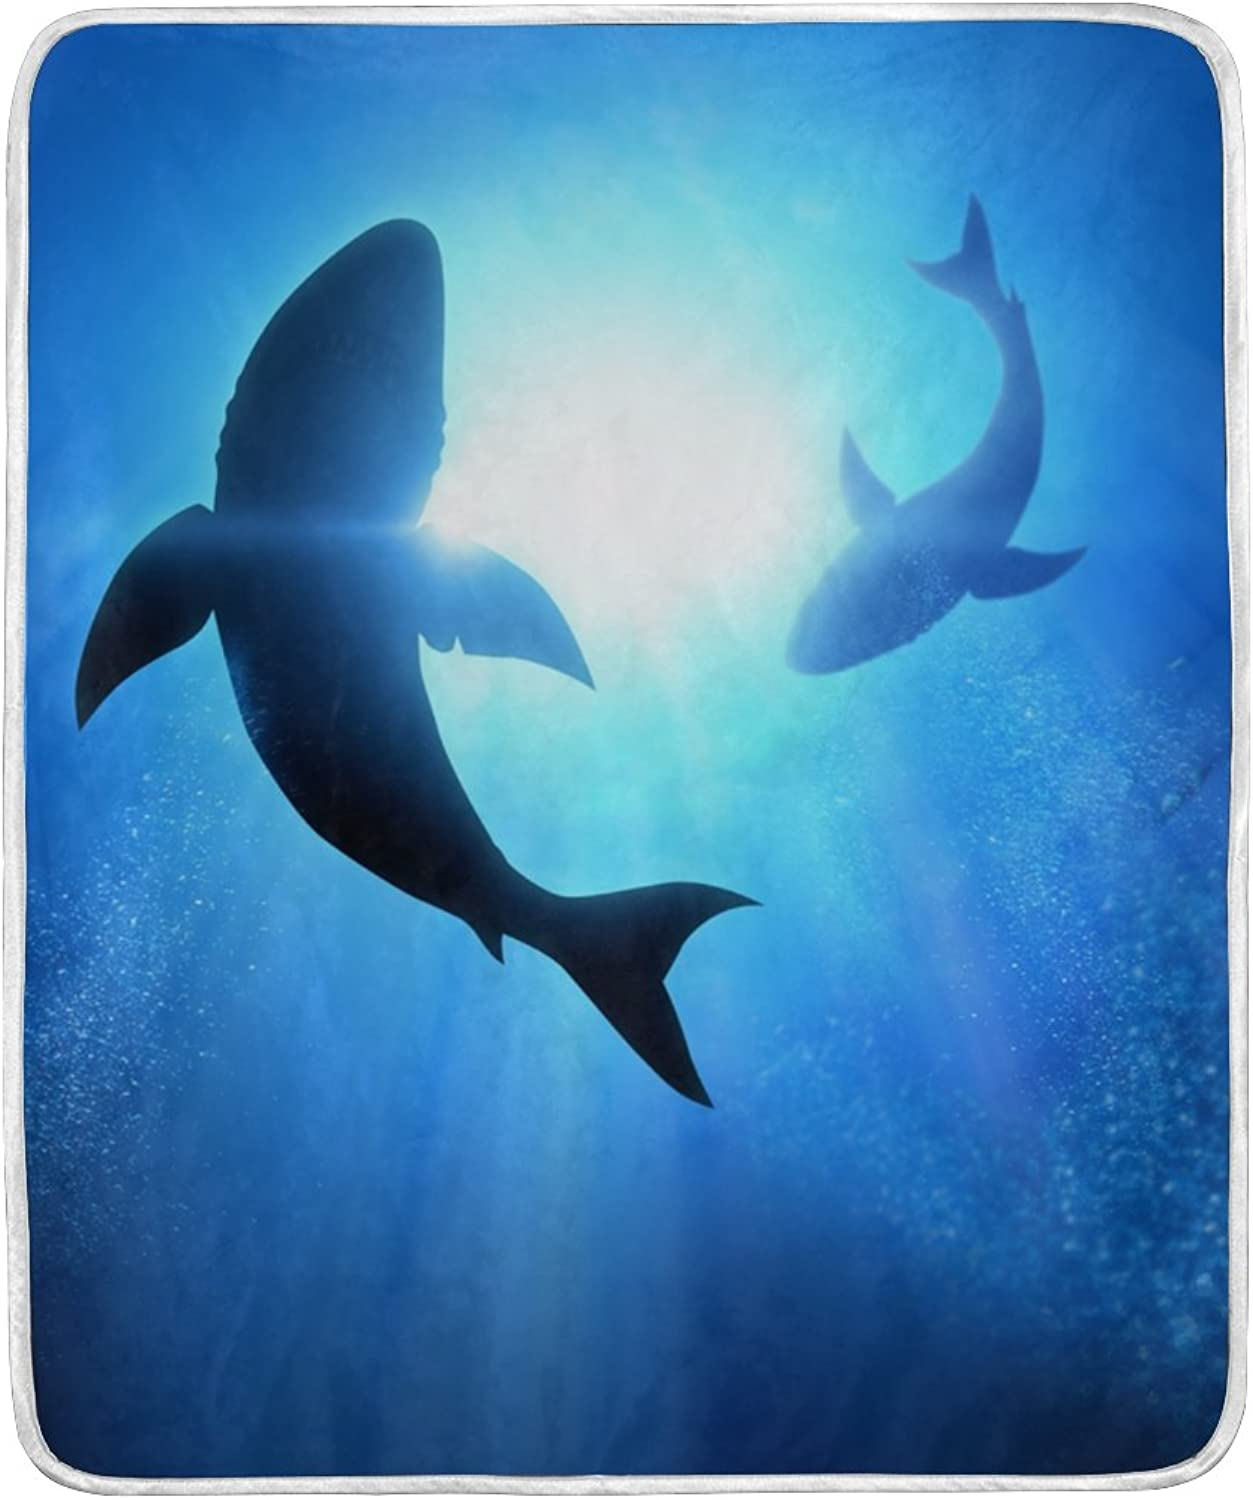 ALIREA Swiming Dophins Super Soft Warm Blanket Lightweight Throw Blankets for Bed Couch Sofa Travelling Camping 60 x 50 Inch for Kids Boys Girls